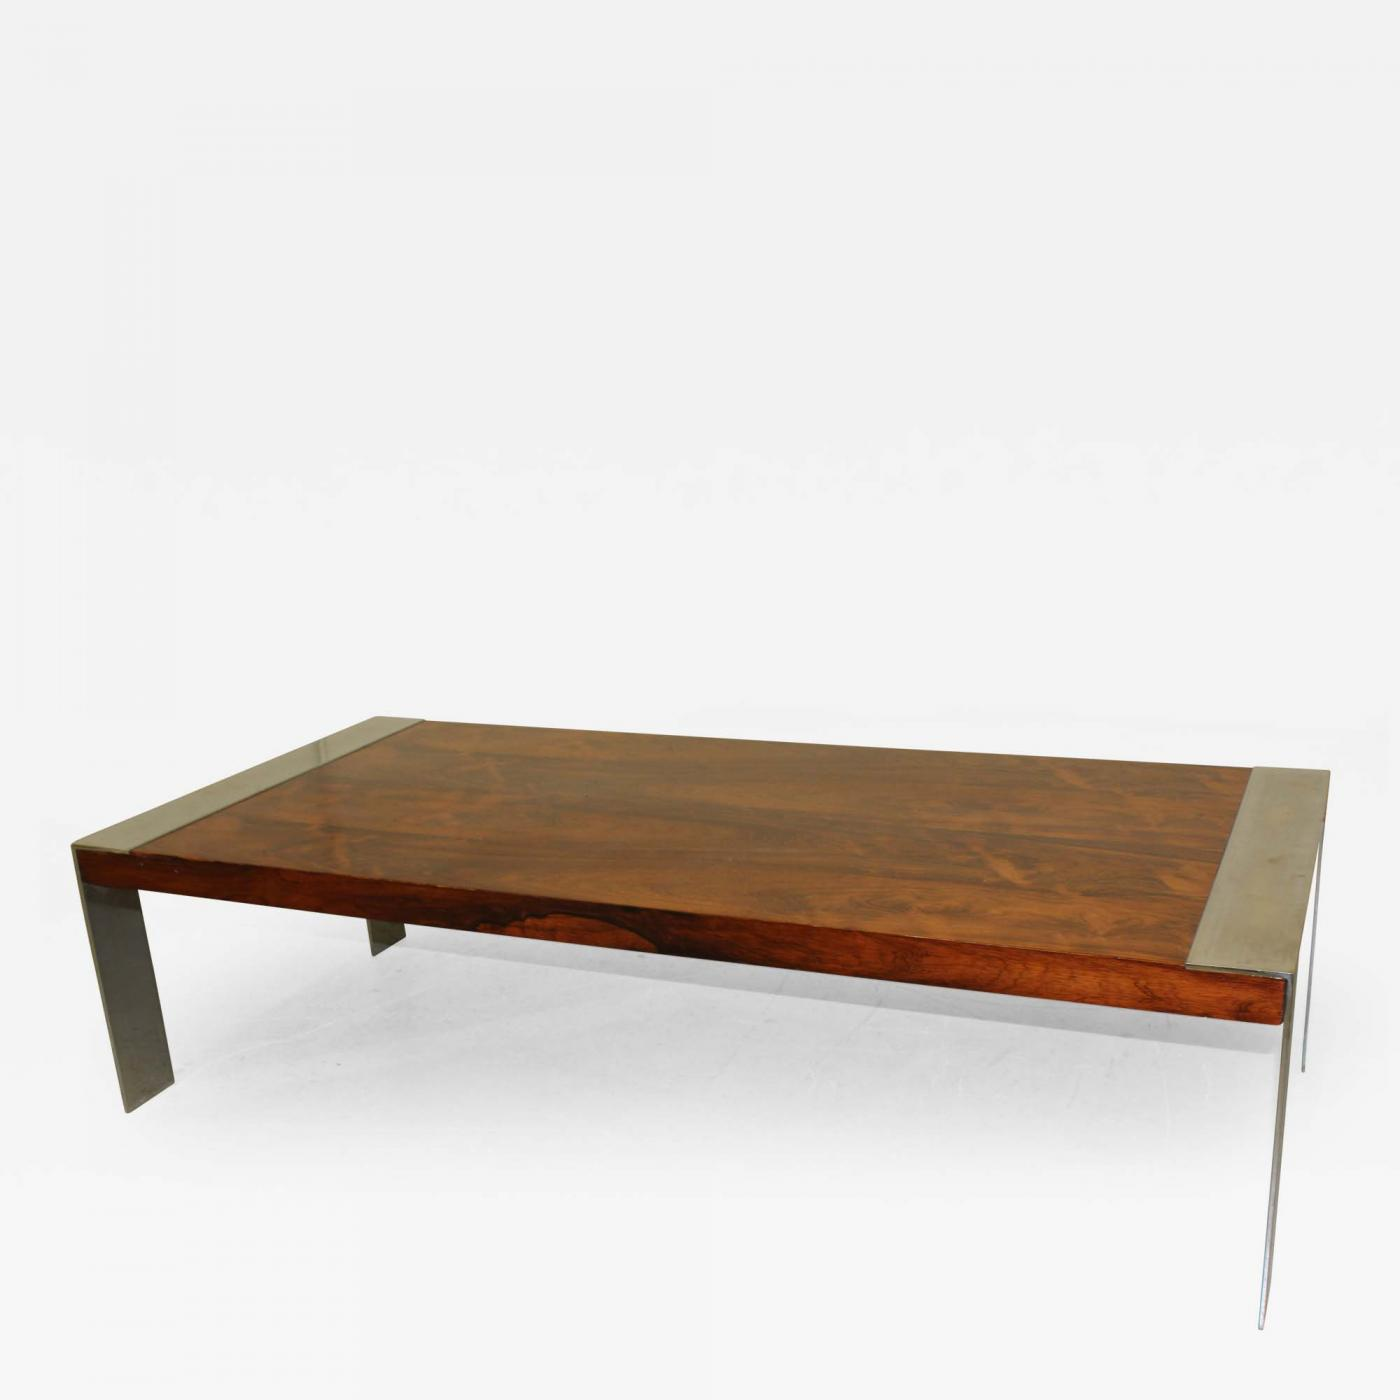 Milo baughman mid century modern coffee table Mid century coffee tables